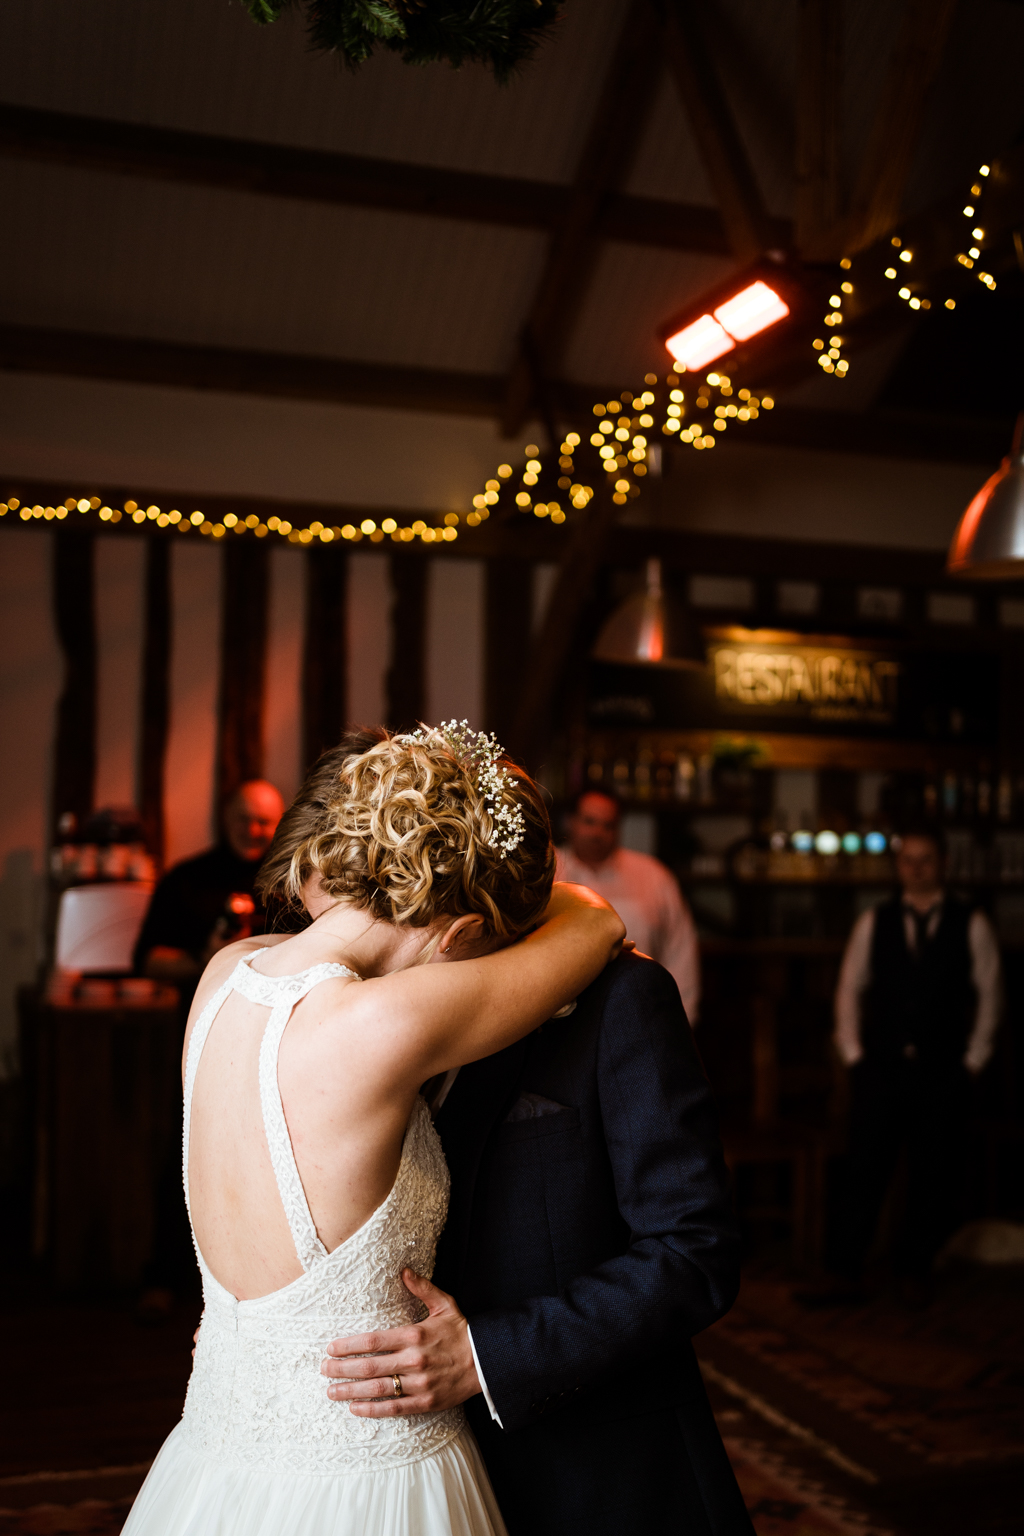 Sophie and Christopher's joyful, festive 2020 wedding at Jimmy's Farm, with Him & Her Wedding Photography (46)